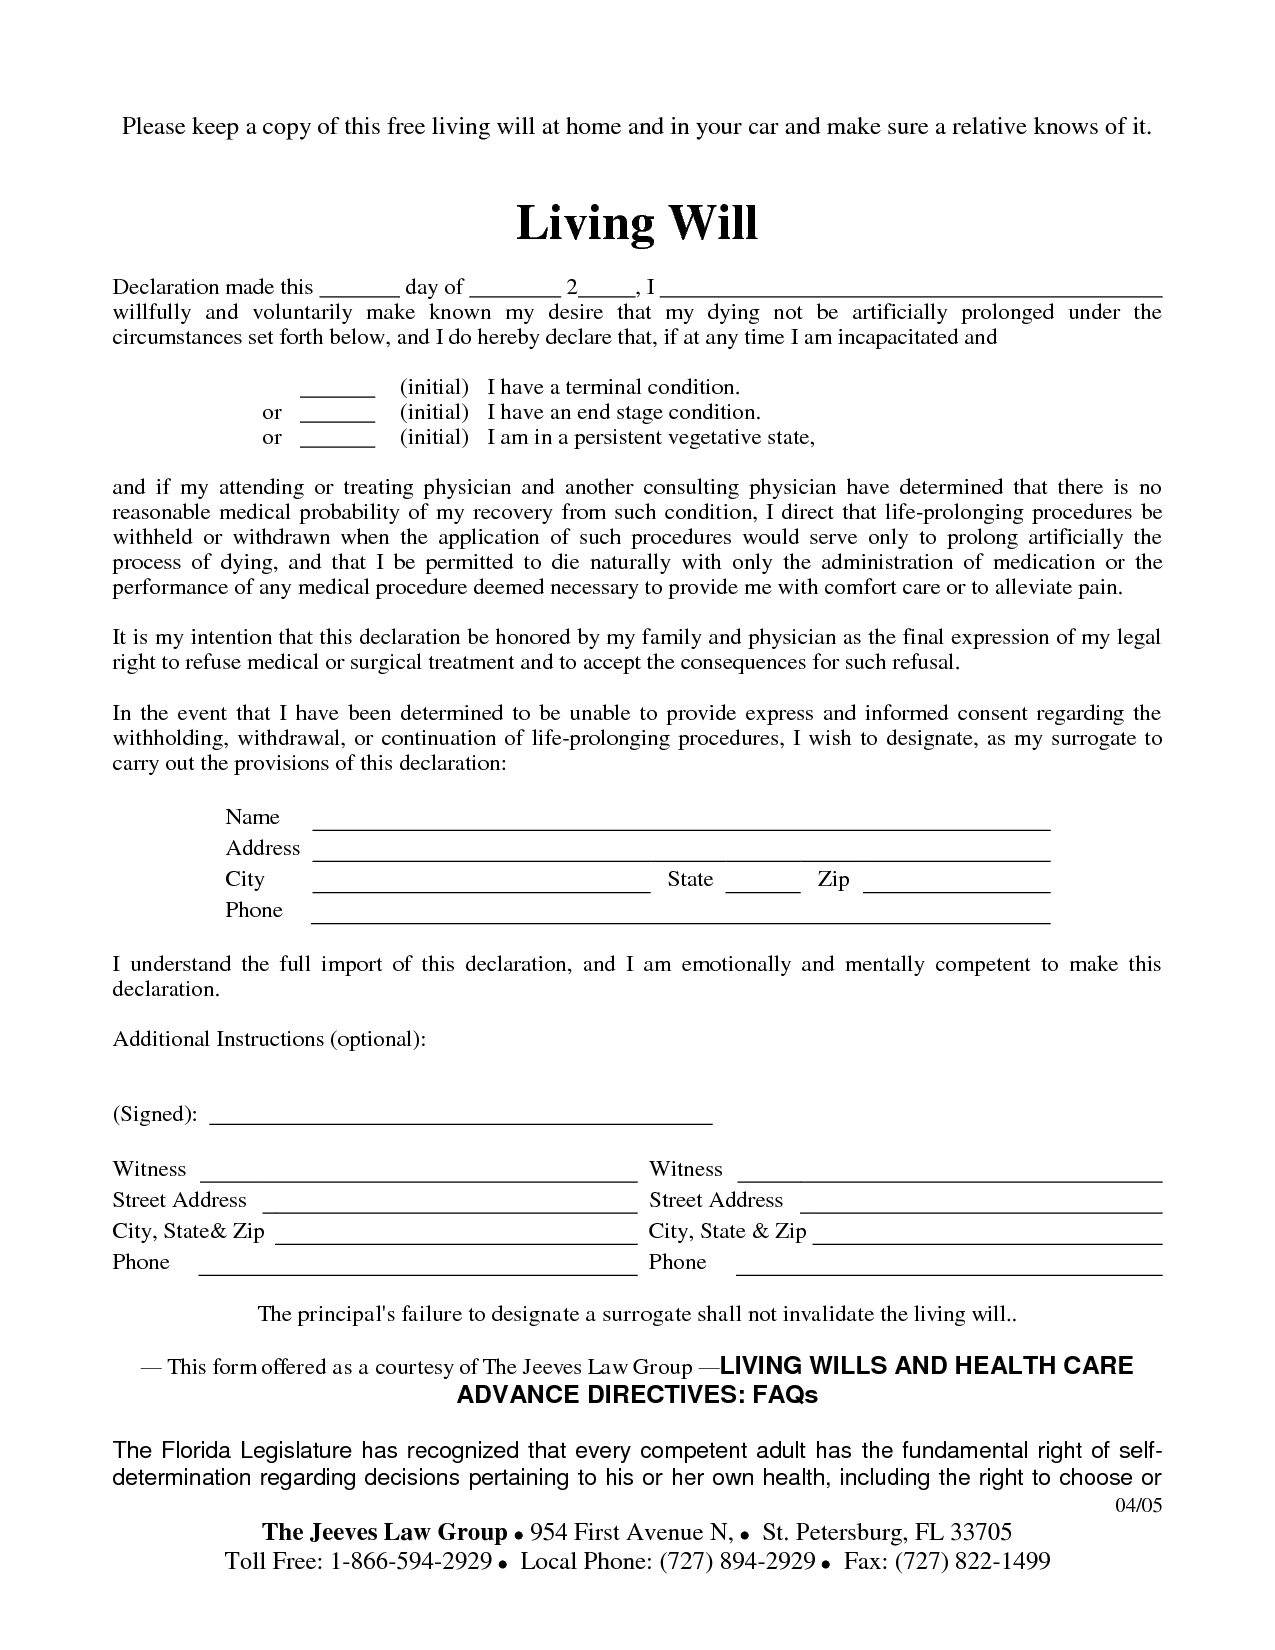 Free Copy Of Living Willrichard_Cataman - Living Will Sample - Free Printable Wills